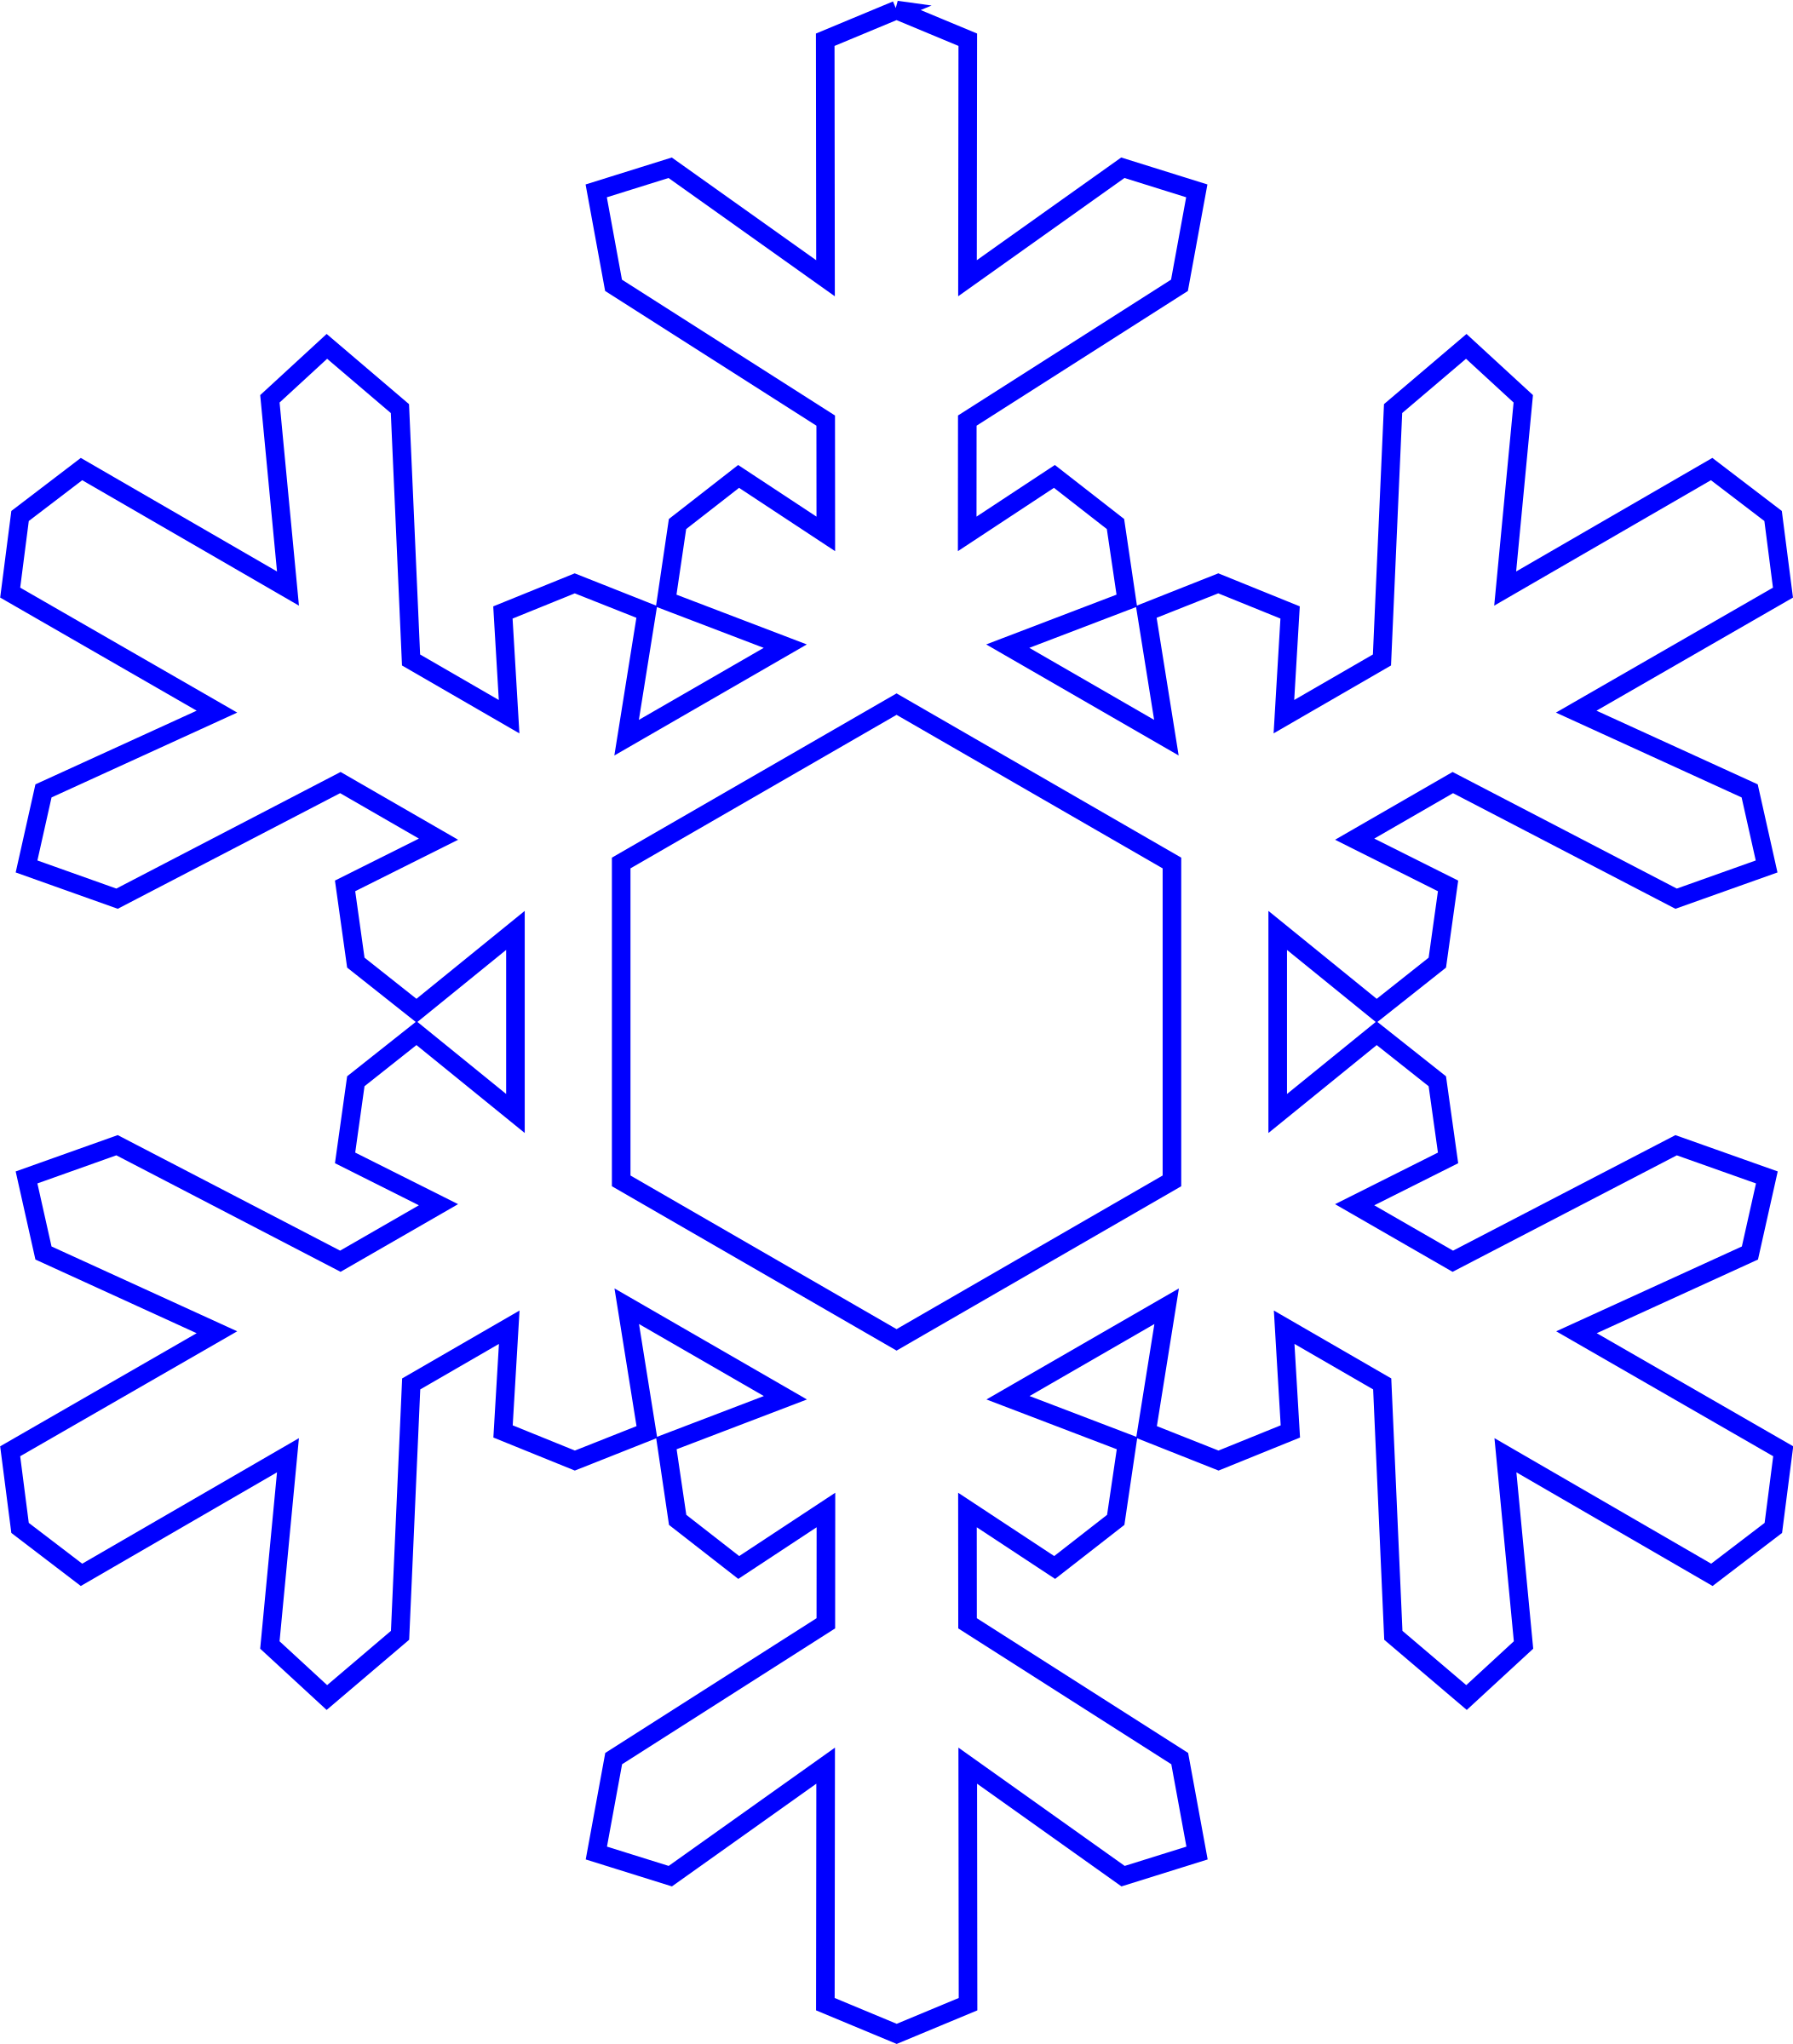 2105x2400 Frost clipart simple snowflake